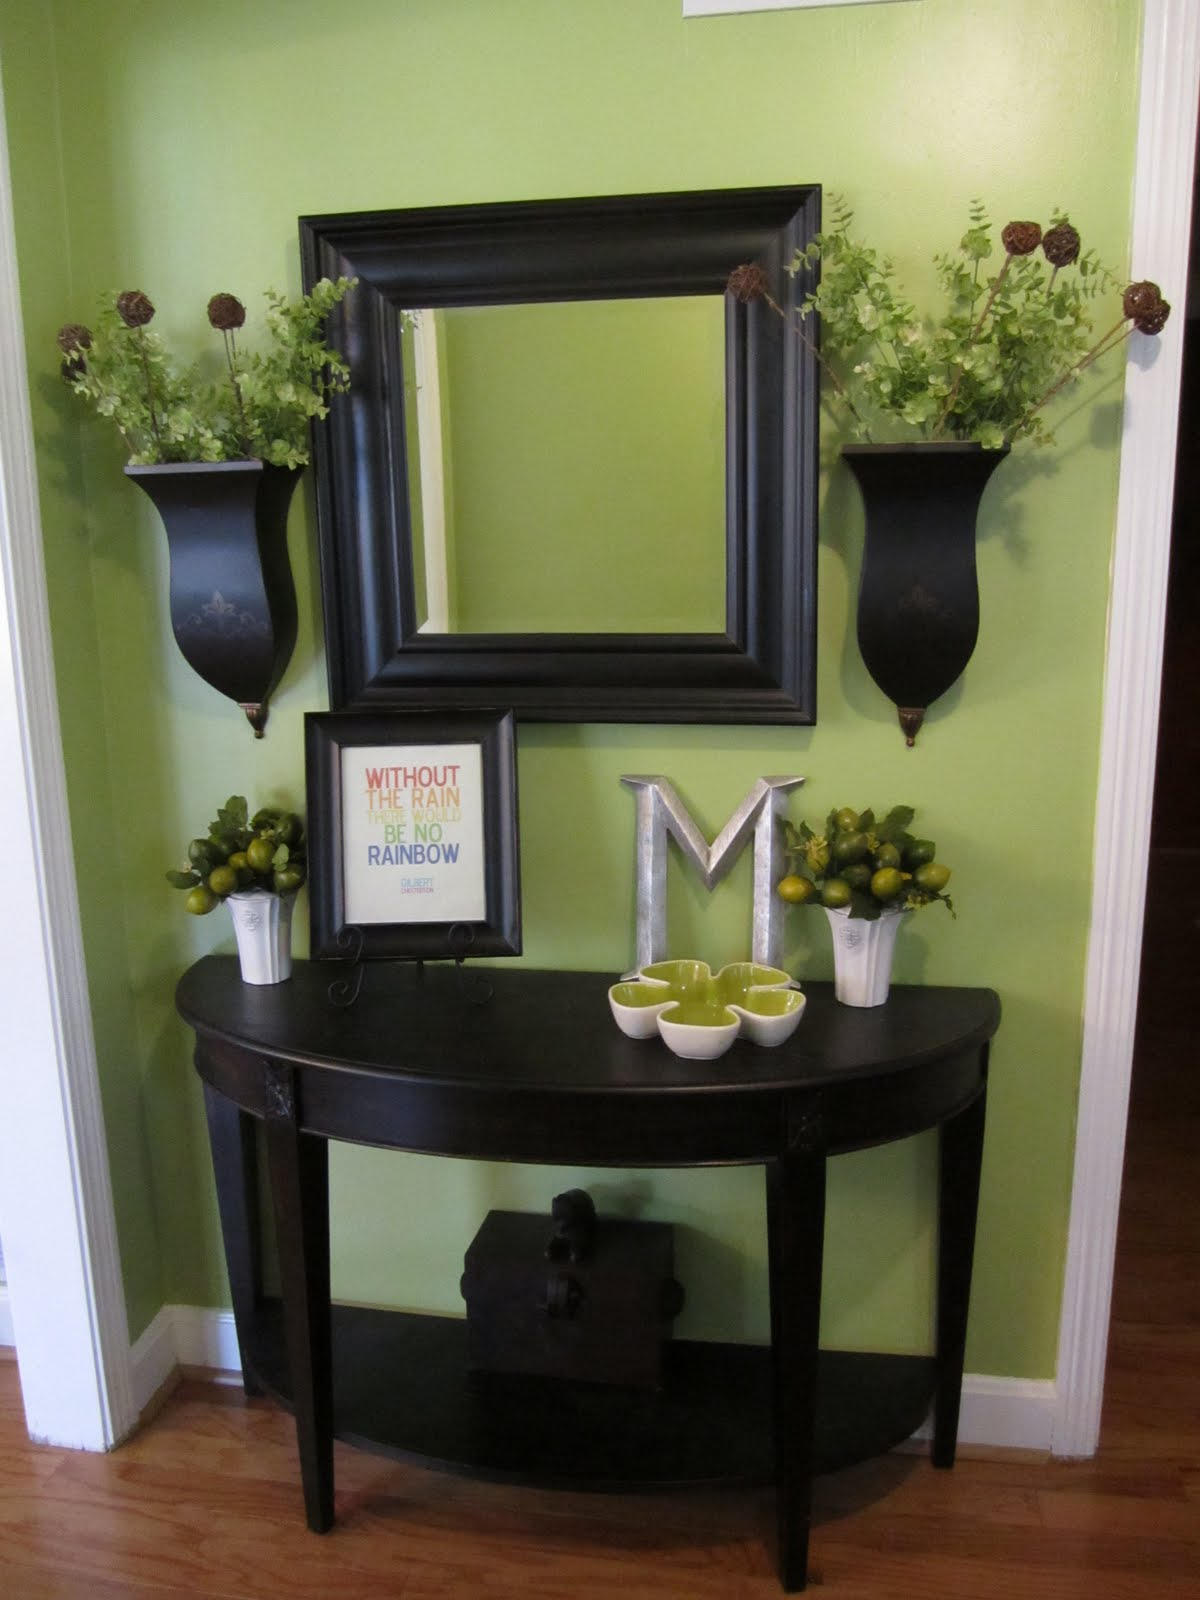 Foyer Entrance : Entryway ideas for school interior home design